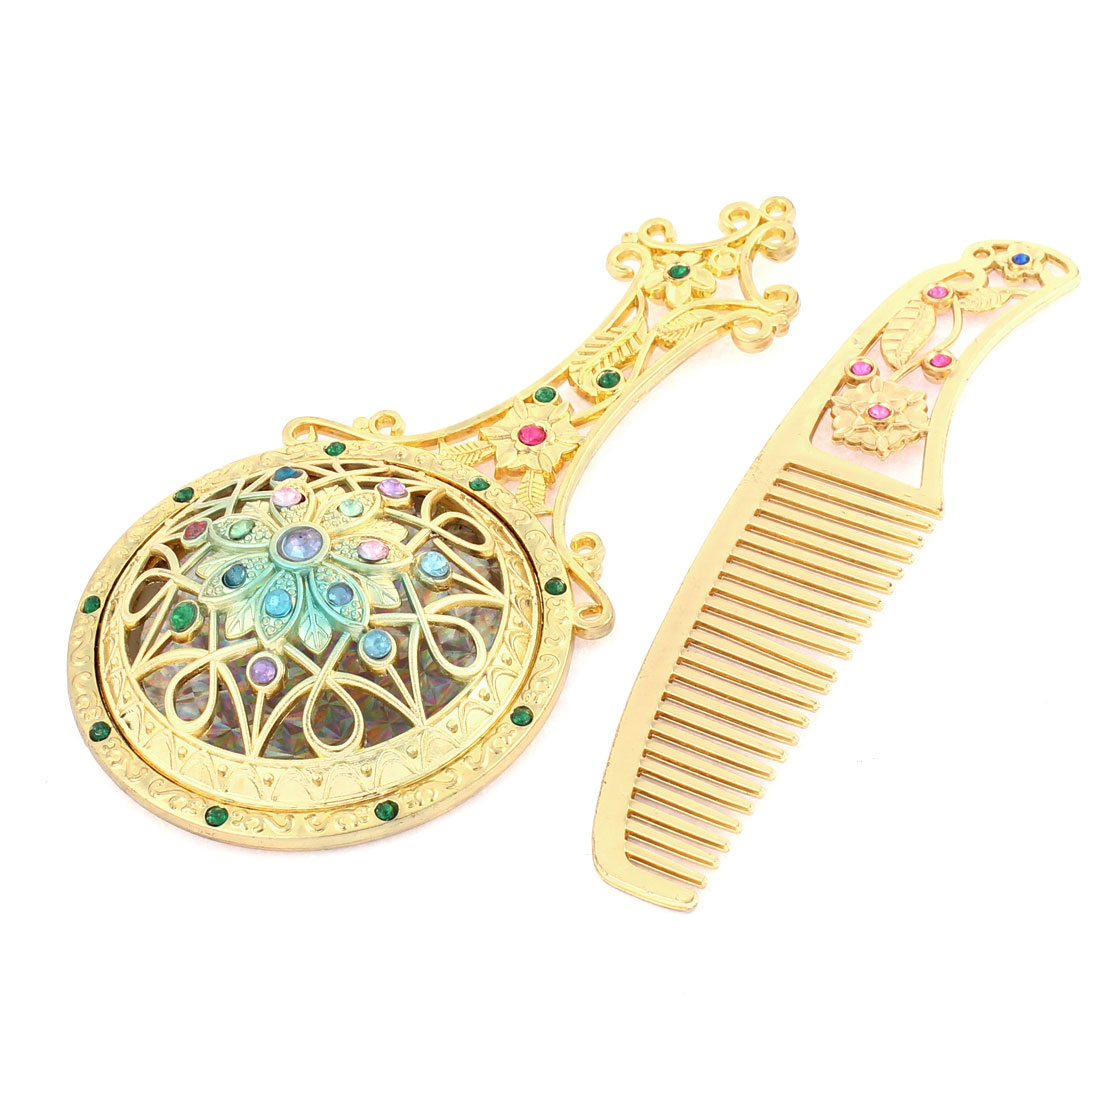 Flower Shaped Faux Rhinestone Decor Handheld Makeup Mirror Comb Set